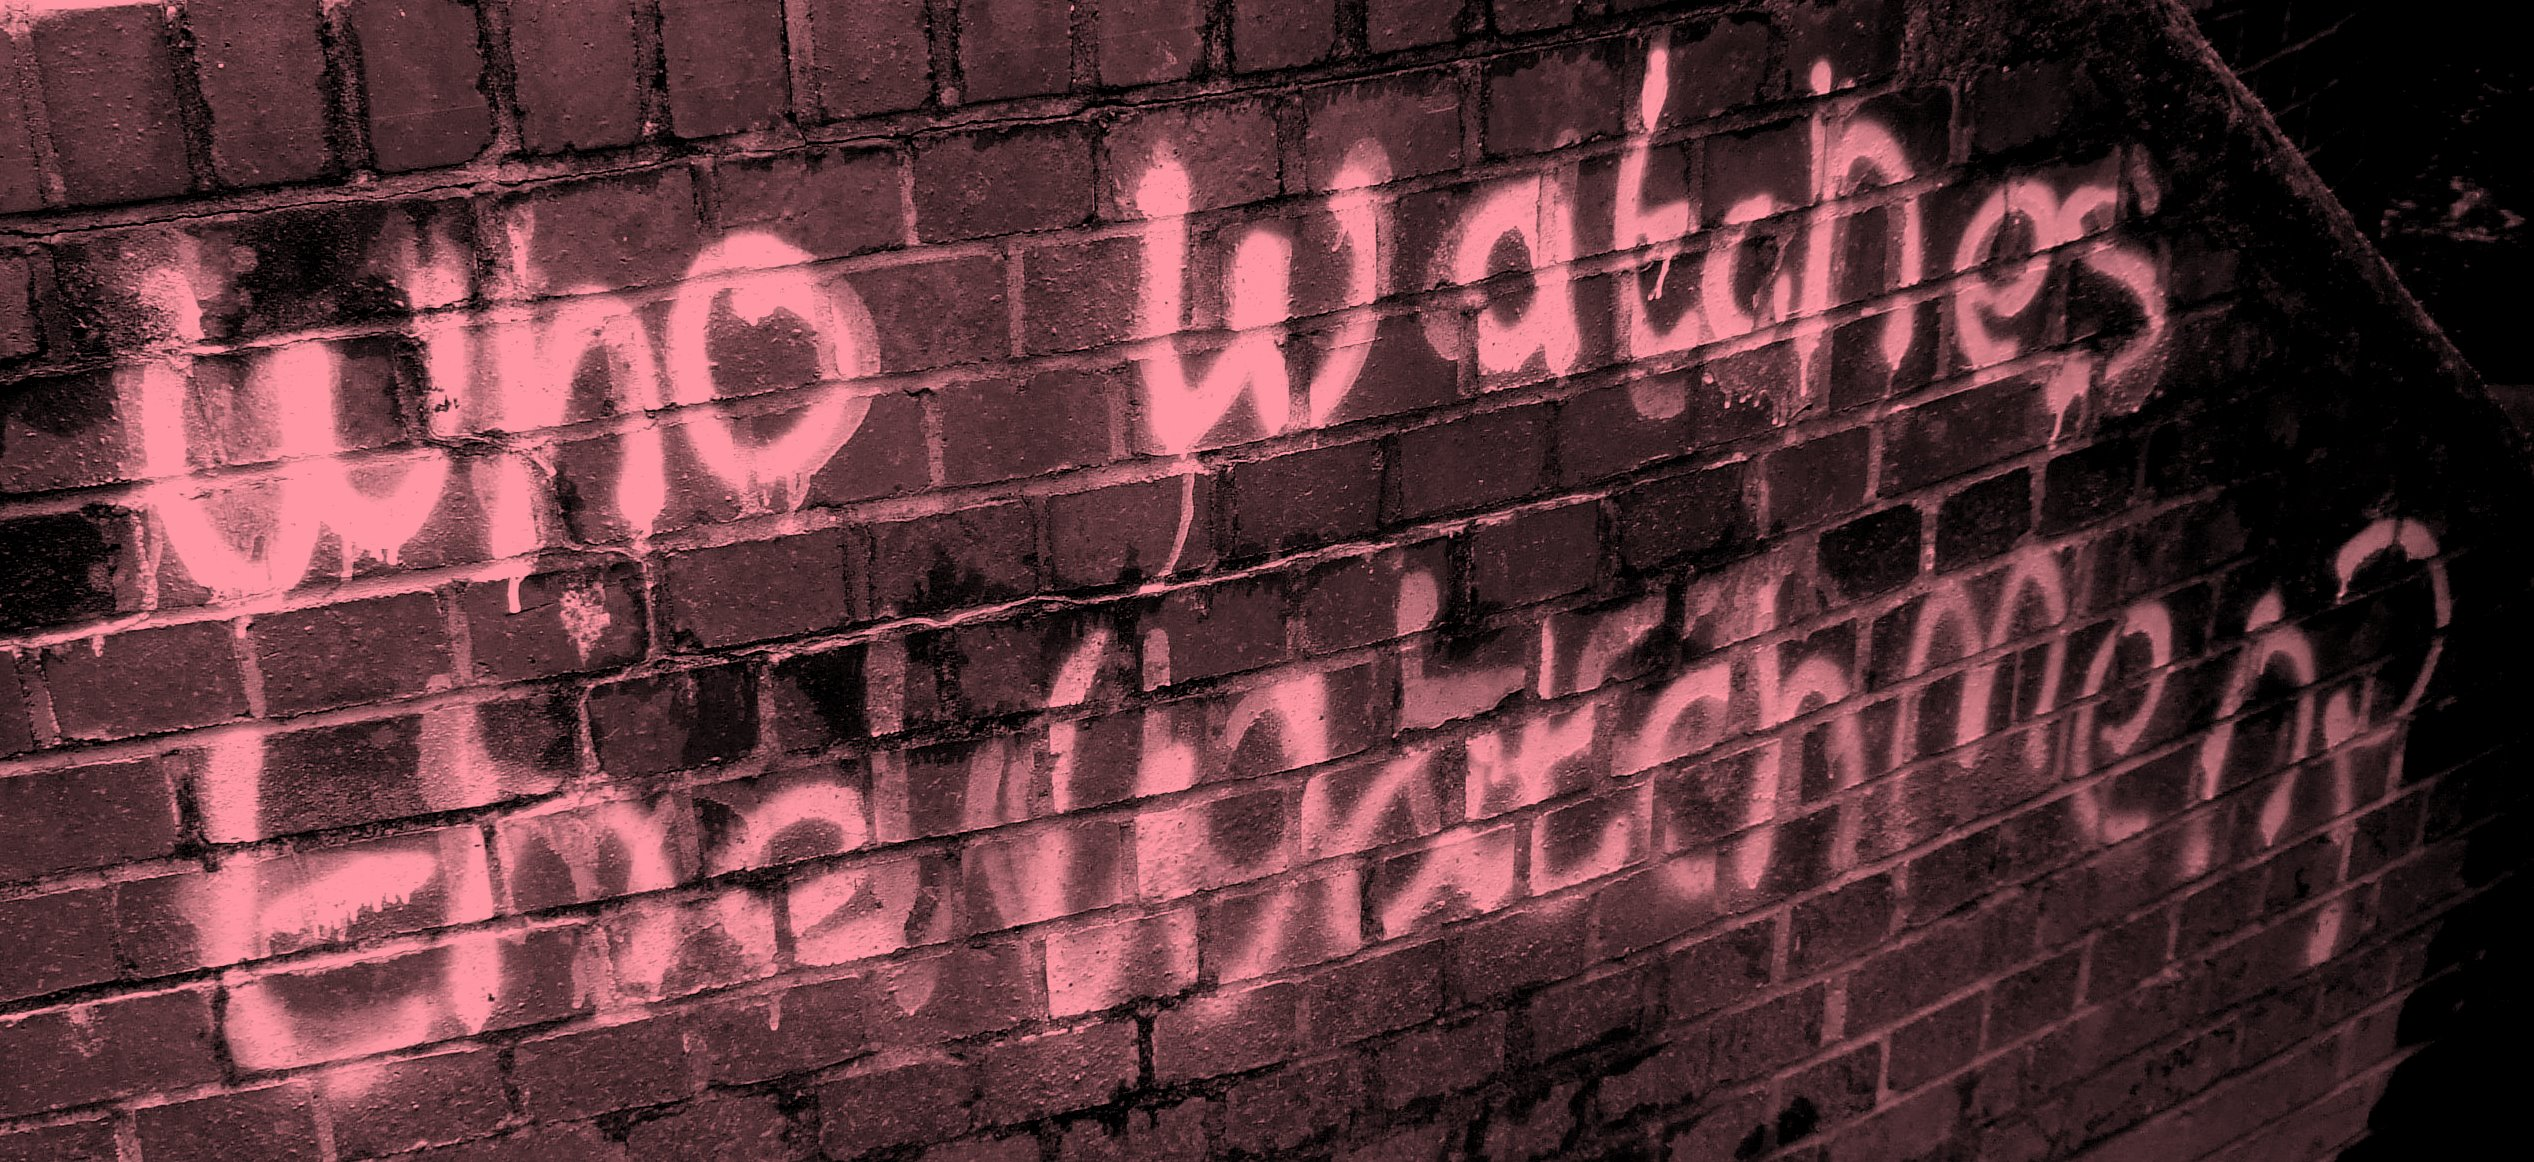 d28c70592 File:Who Watches the Watchmen.jpg - Wikimedia Commons